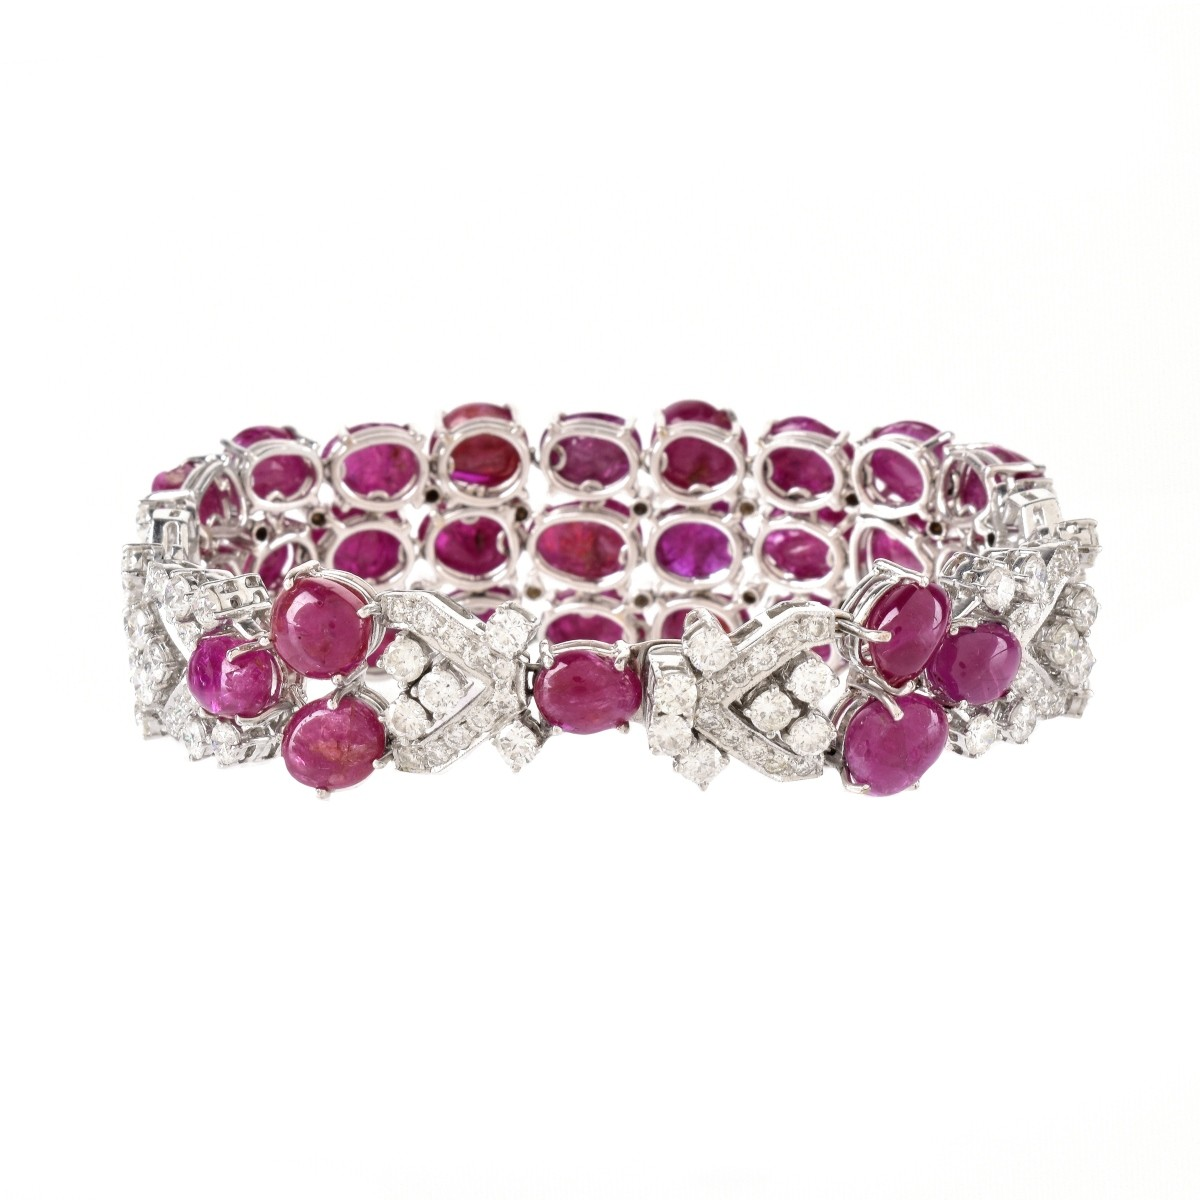 Burma Ruby, Diamond and 18K Bracelet